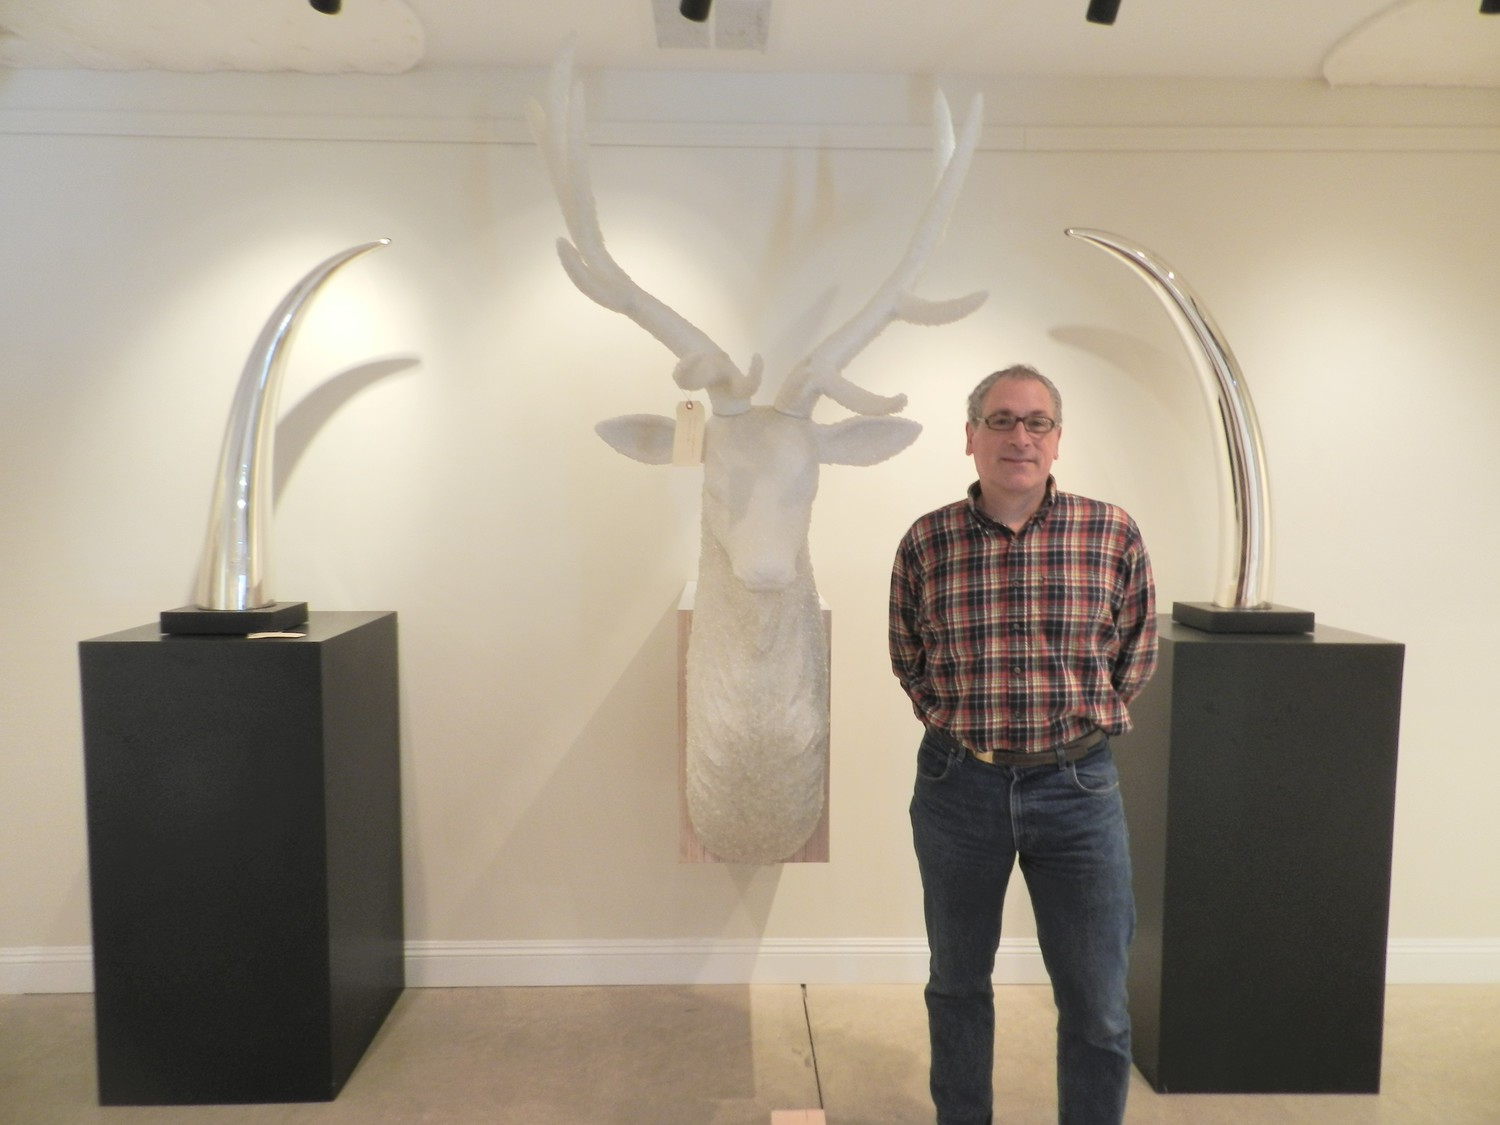 Locust Valley native and artist Joseph Rossano stood in the shadows of silvered tusks, which were constructed out of materials donated by the Museum of Glass.